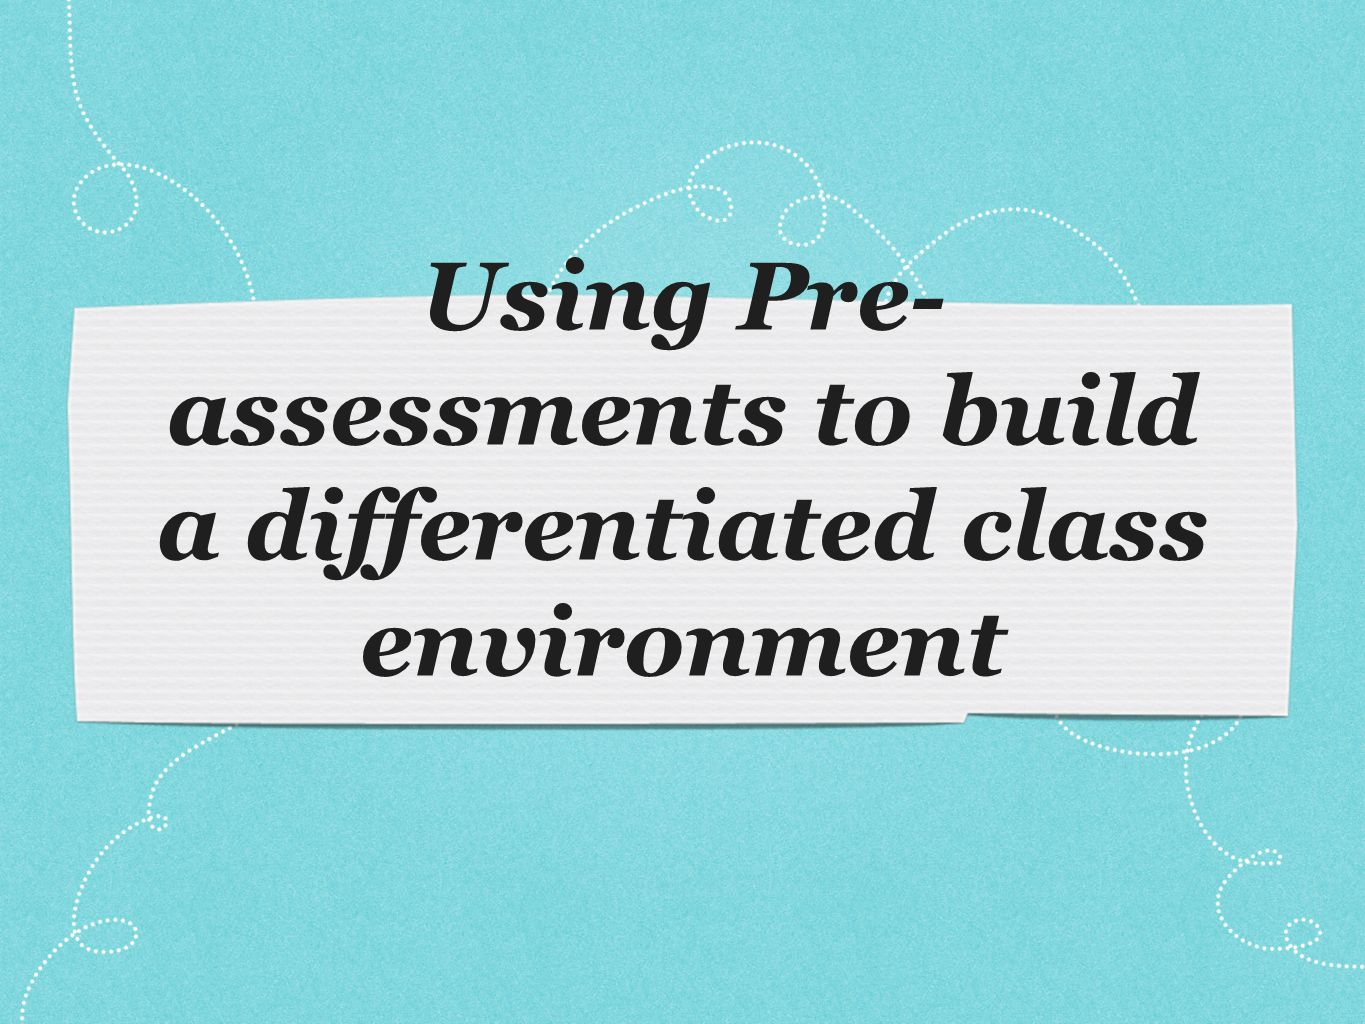 Using Pre- assessments to build a differentiated class environment